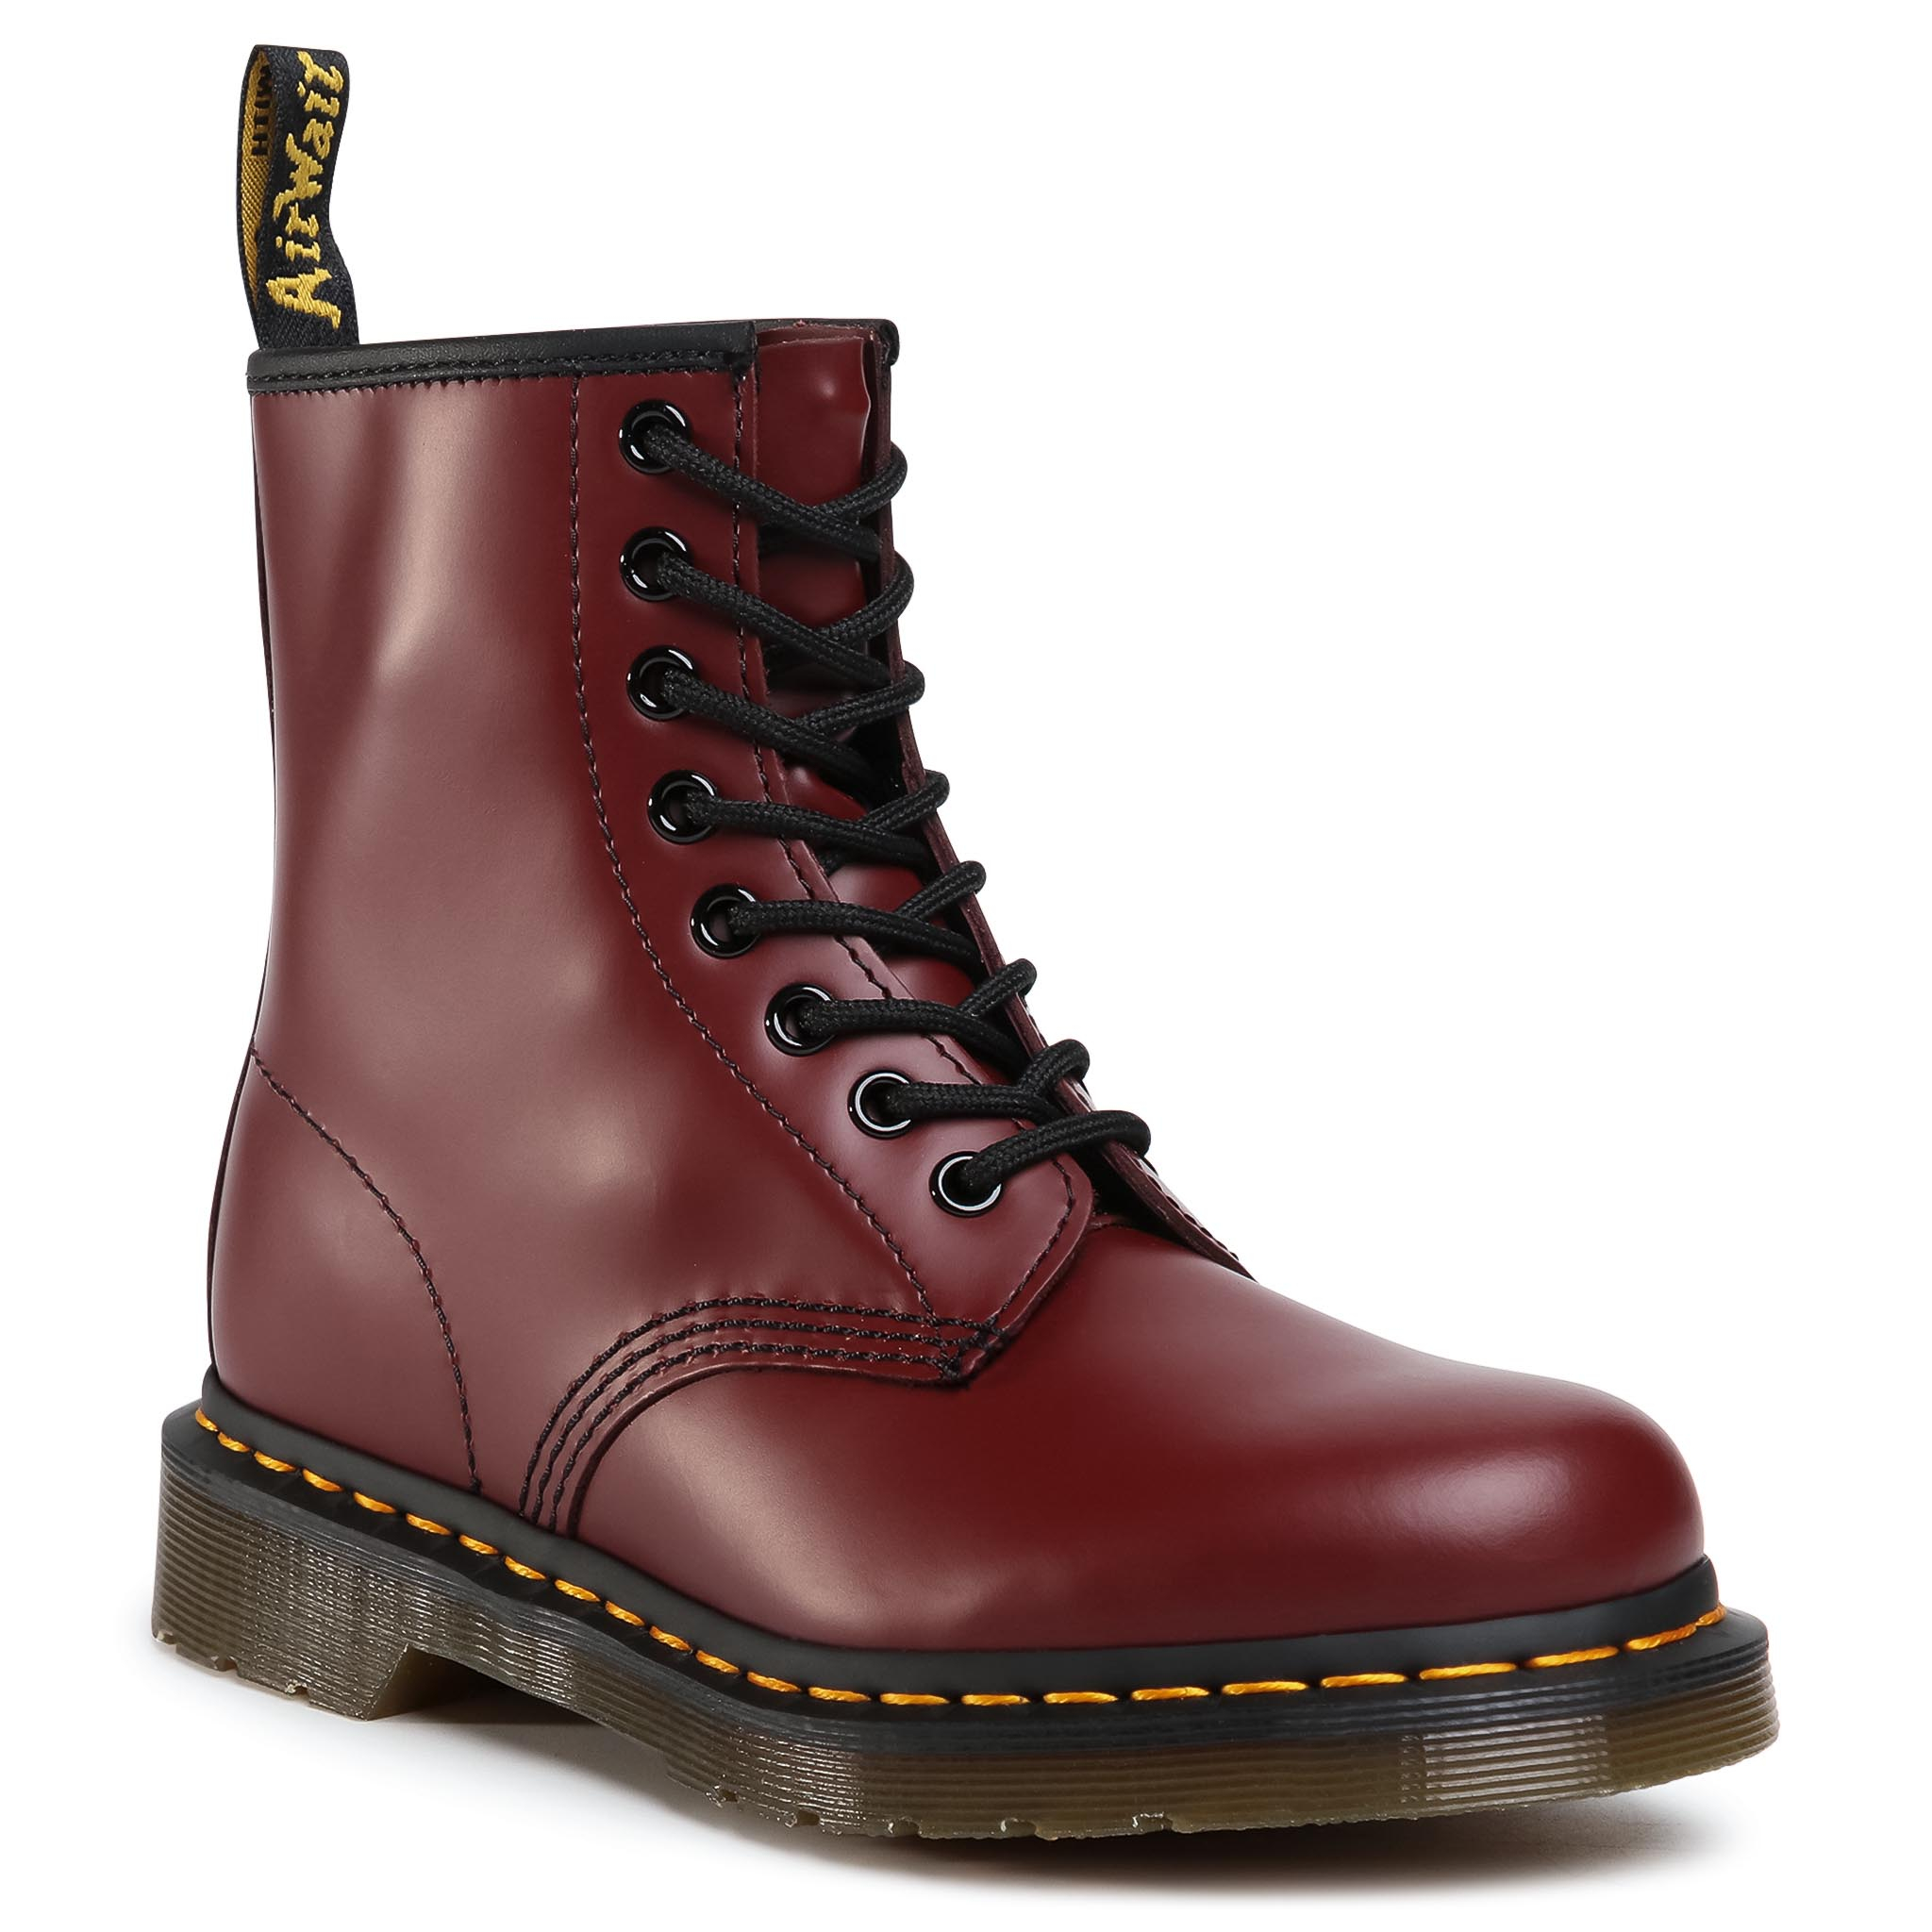 Kerzai DR. MARTENS - 1460 Smooth 11822600 Cherry Red